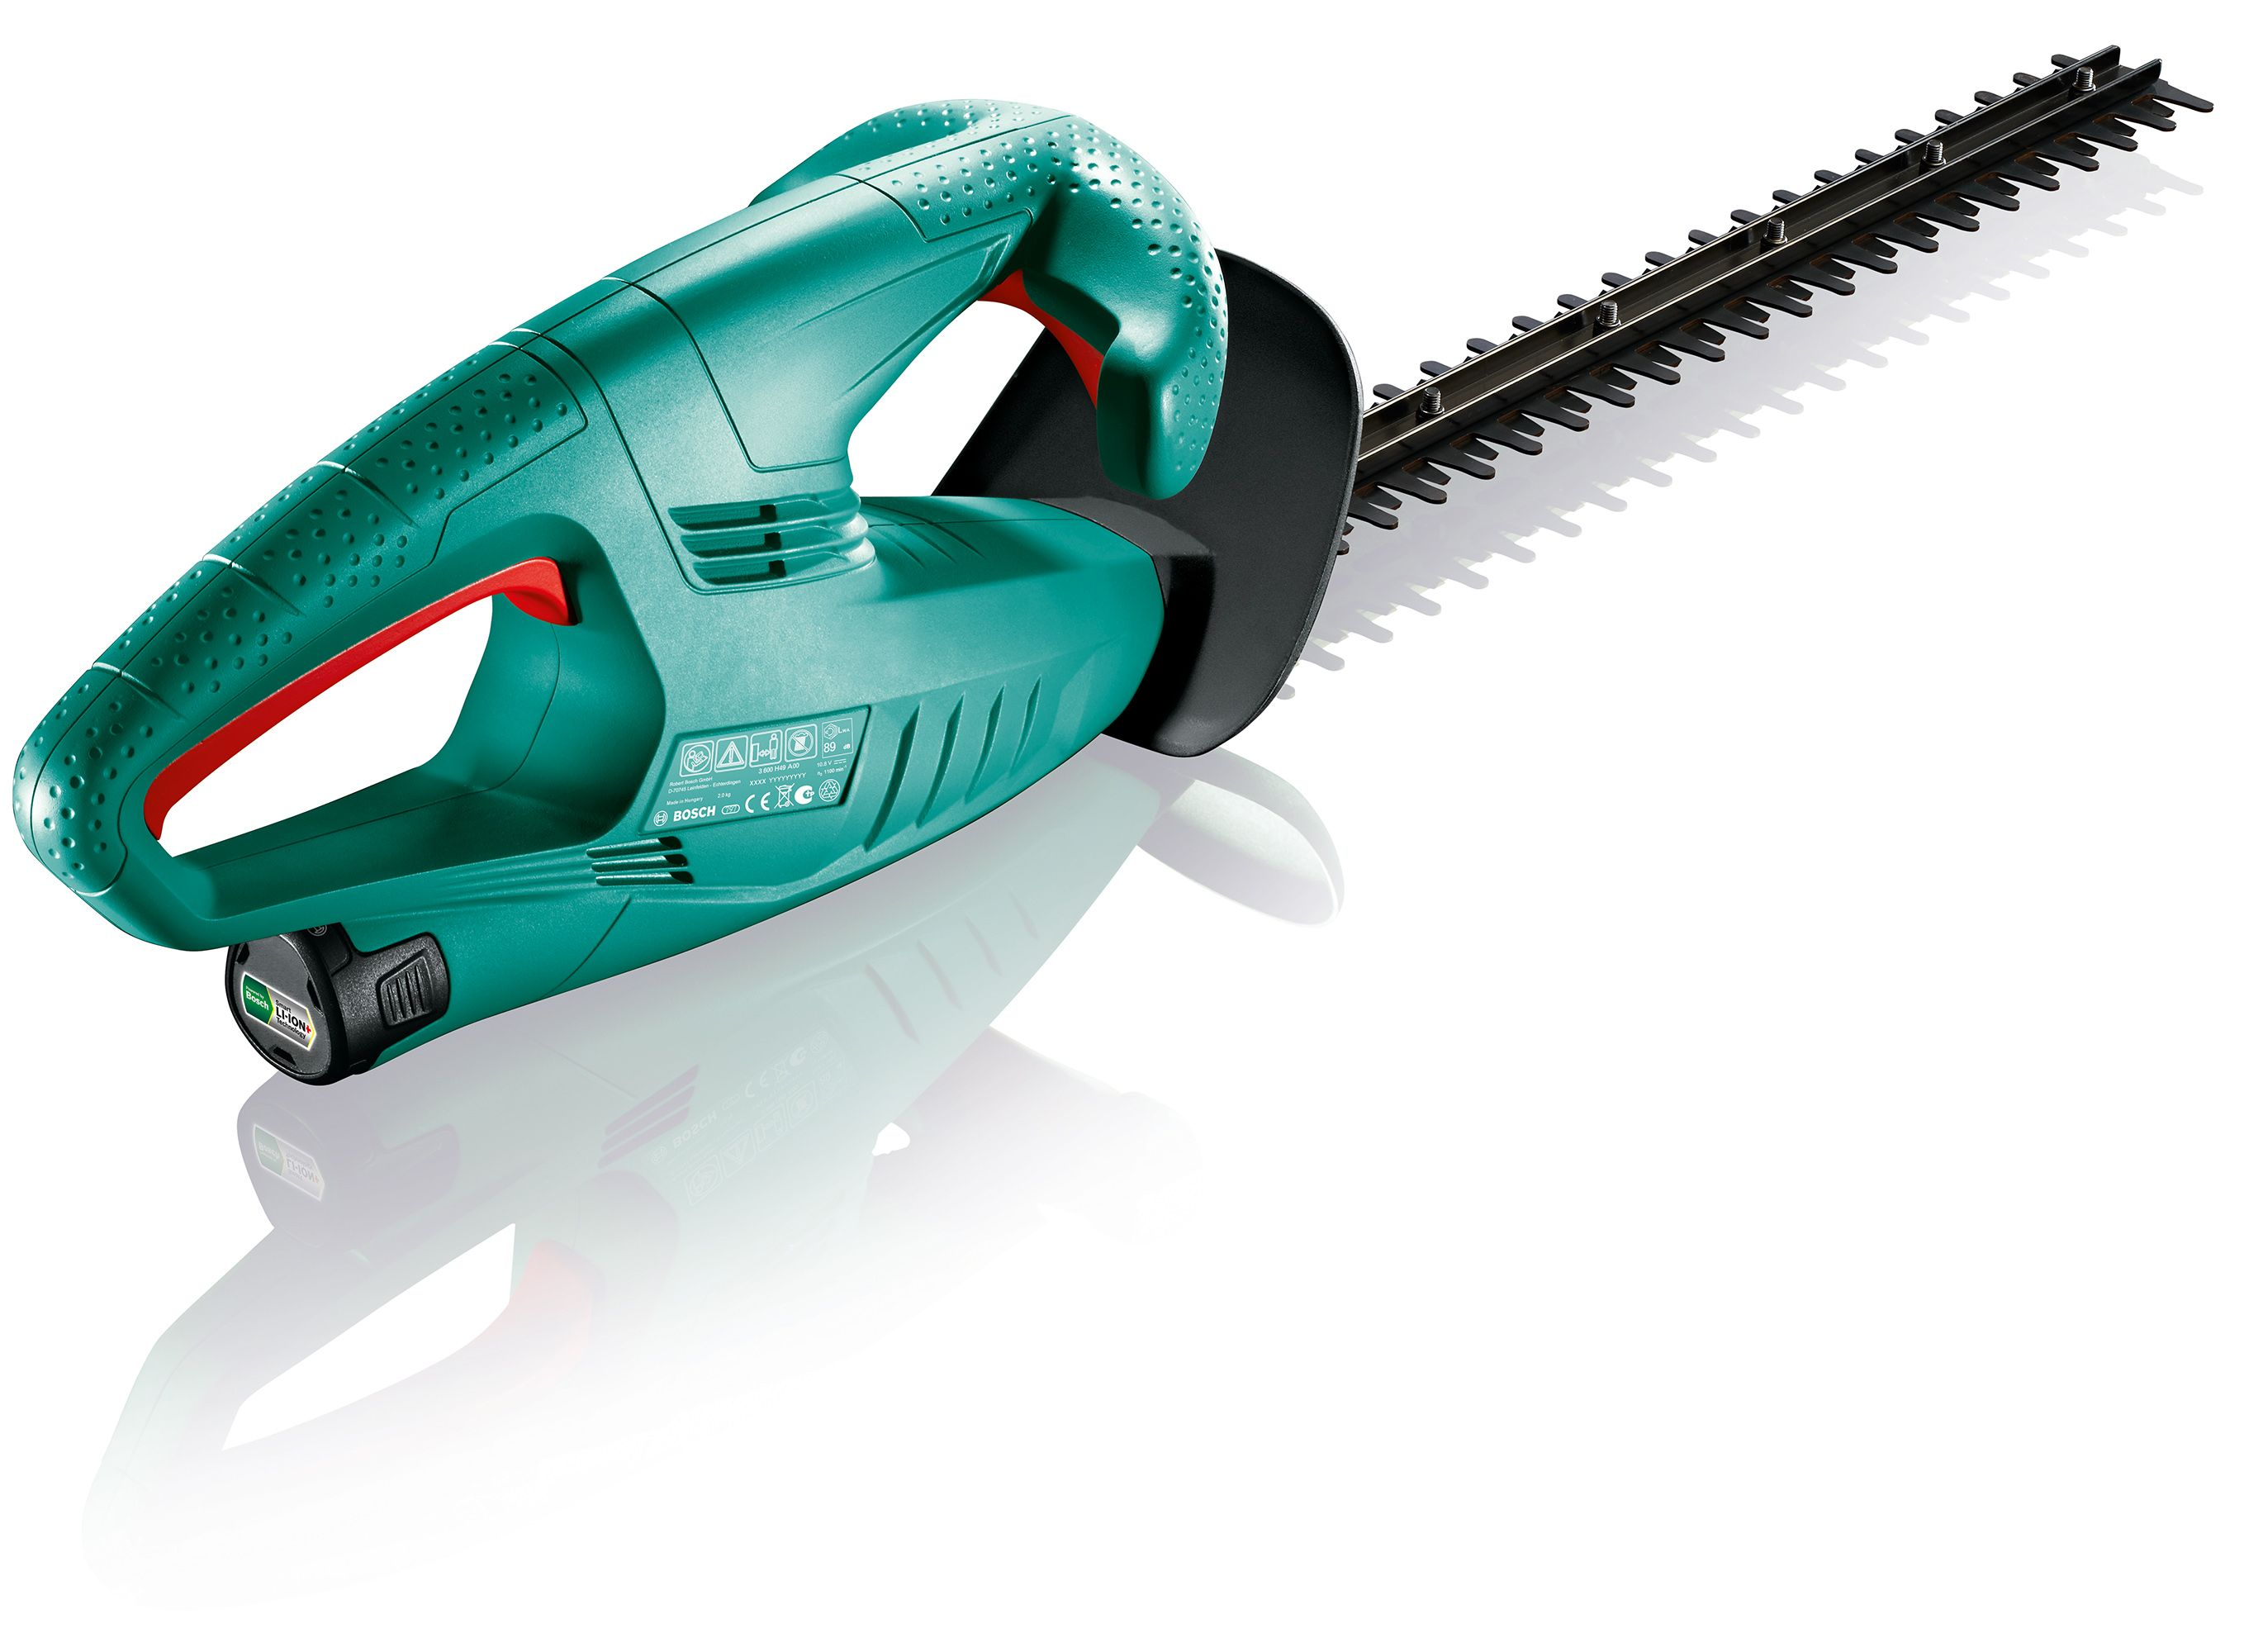 Bosch Ahs 45-15 Li Electric Cordless Lithium-ion Hedge Trimmer